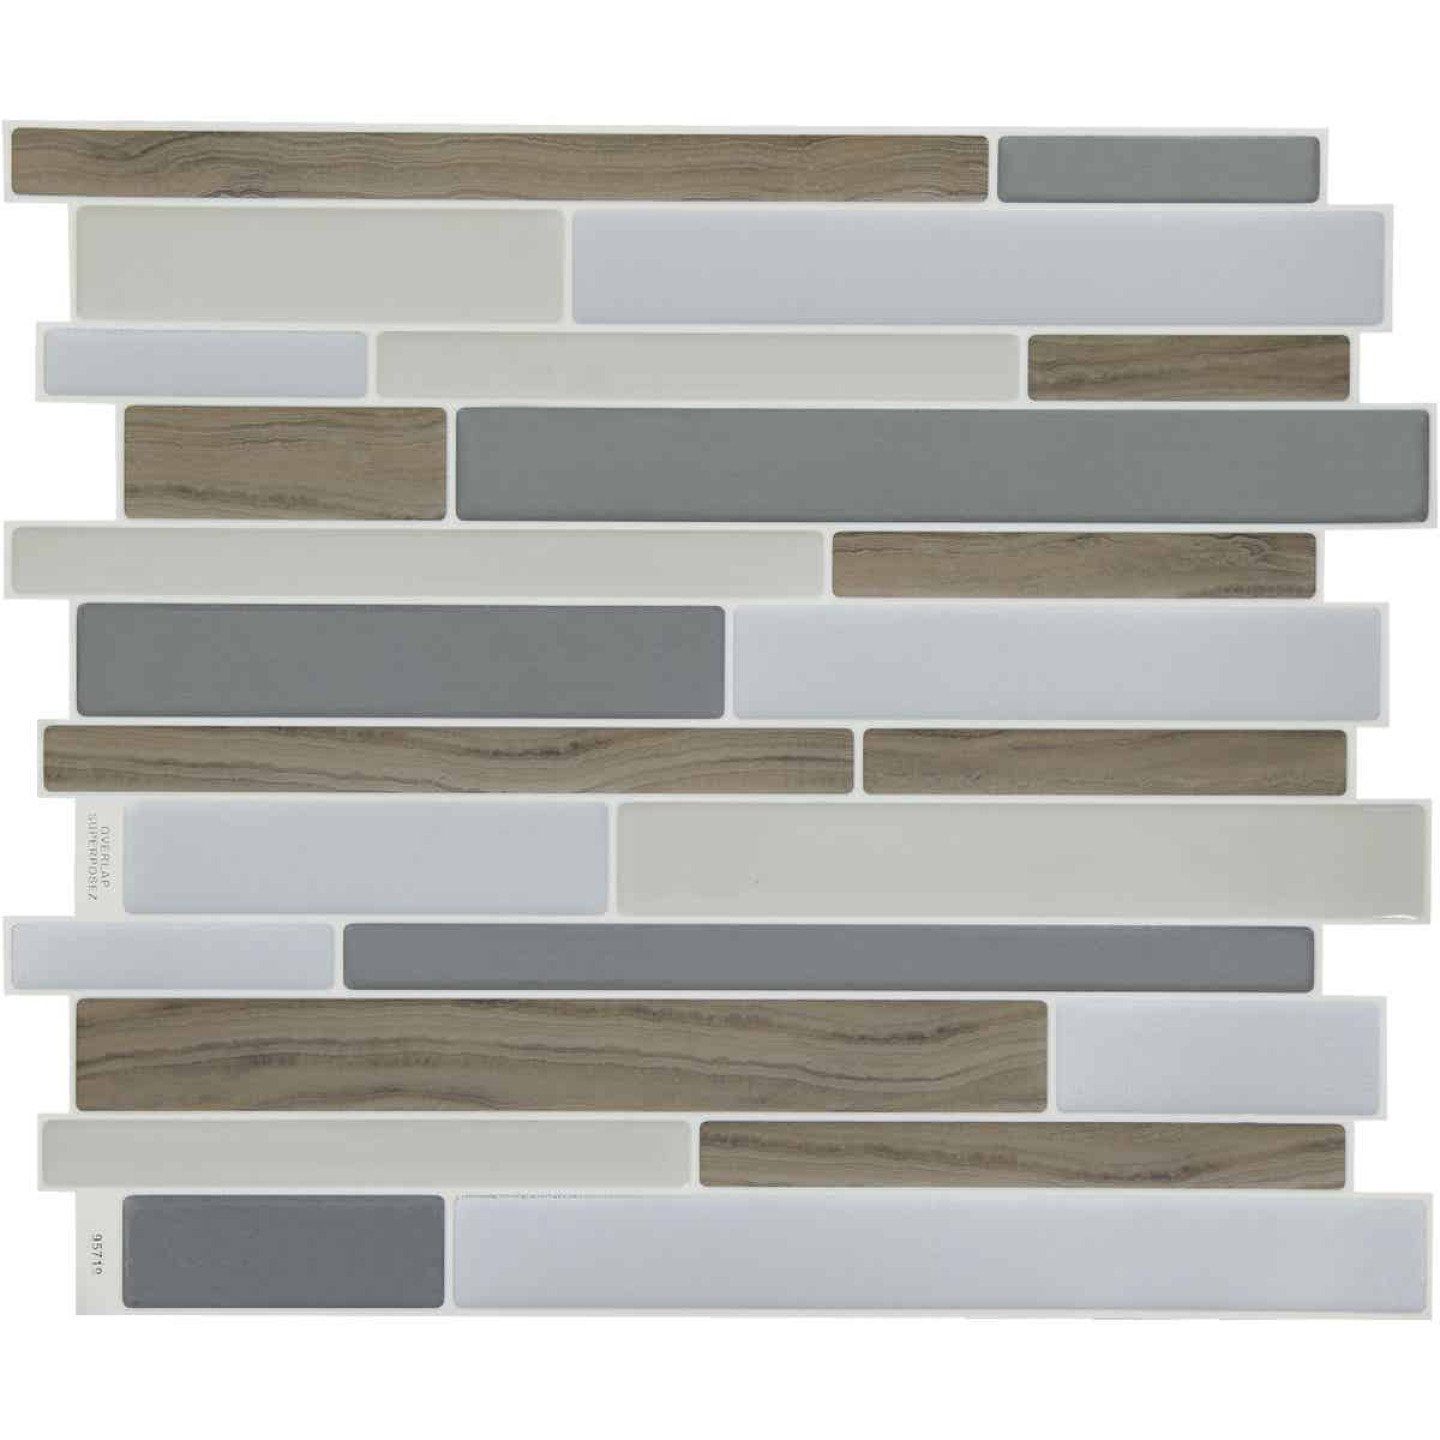 Smart Tiles Approx. 9 In. x 11 In. Glass-Like Vinyl Backsplash Peel & Stick, Milano Argento Mosaic (6-Pack) Image 1